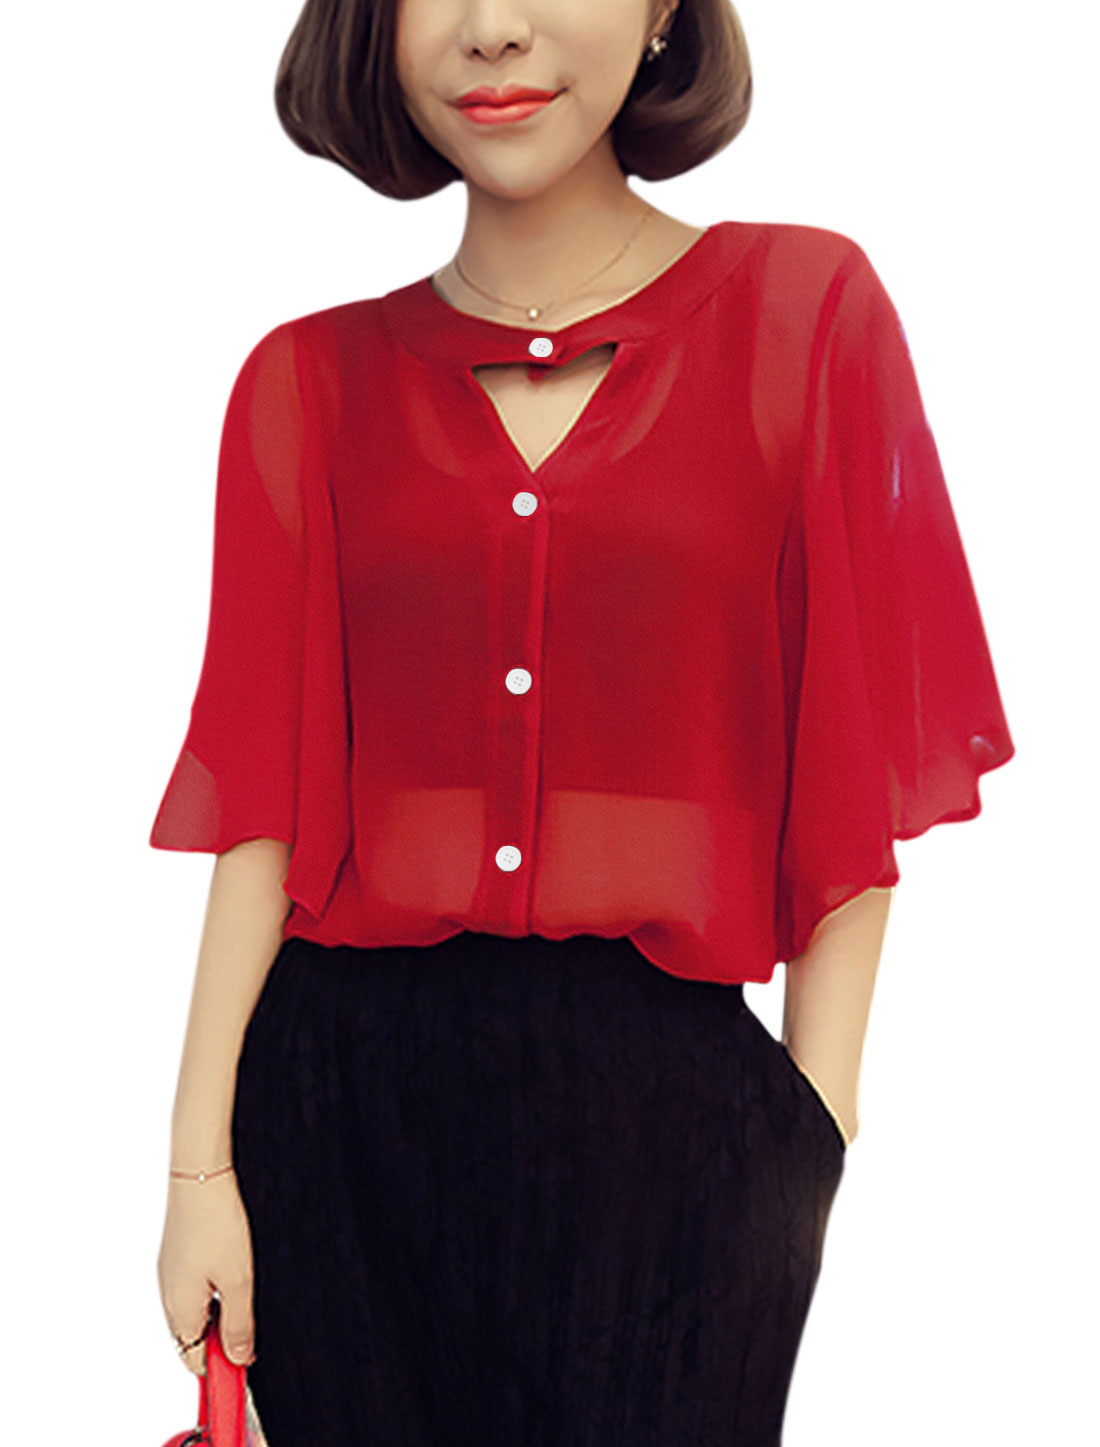 Women Round Neck Cut Out Front Half Bell Sleeves Shirt Red XS